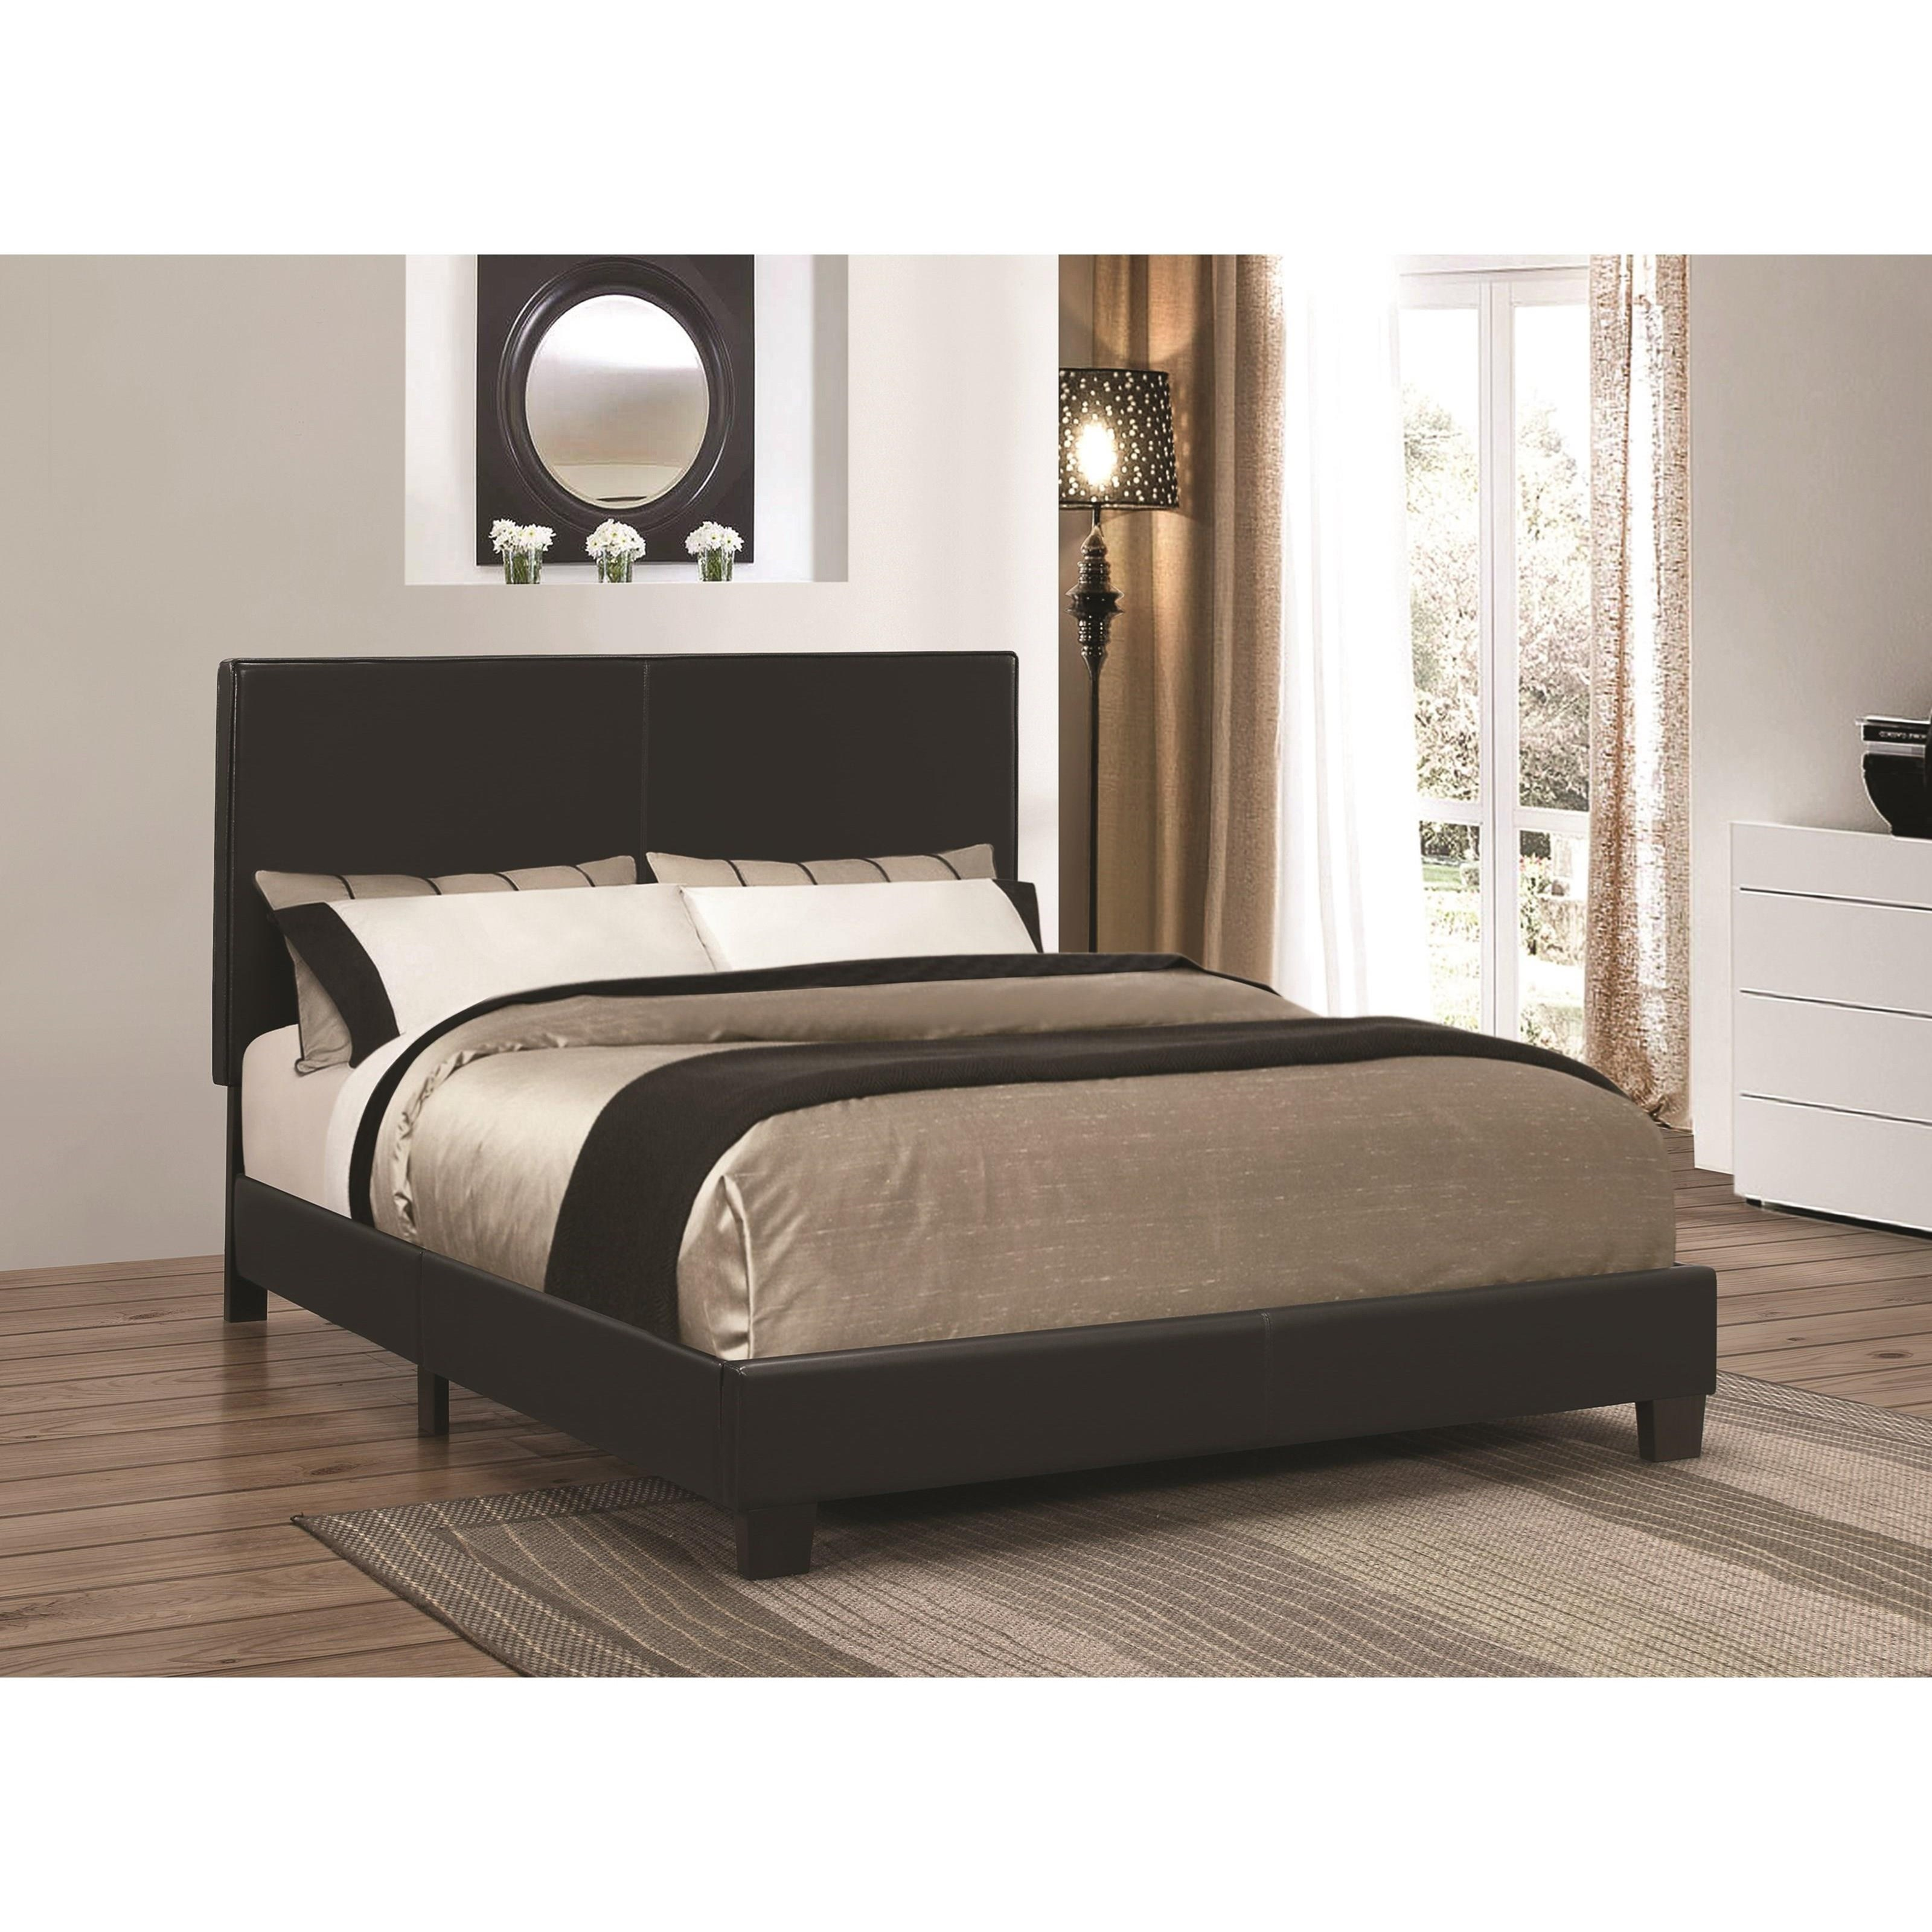 Coaster Upholstered Beds Queen Bed - Item Number: 300558Q